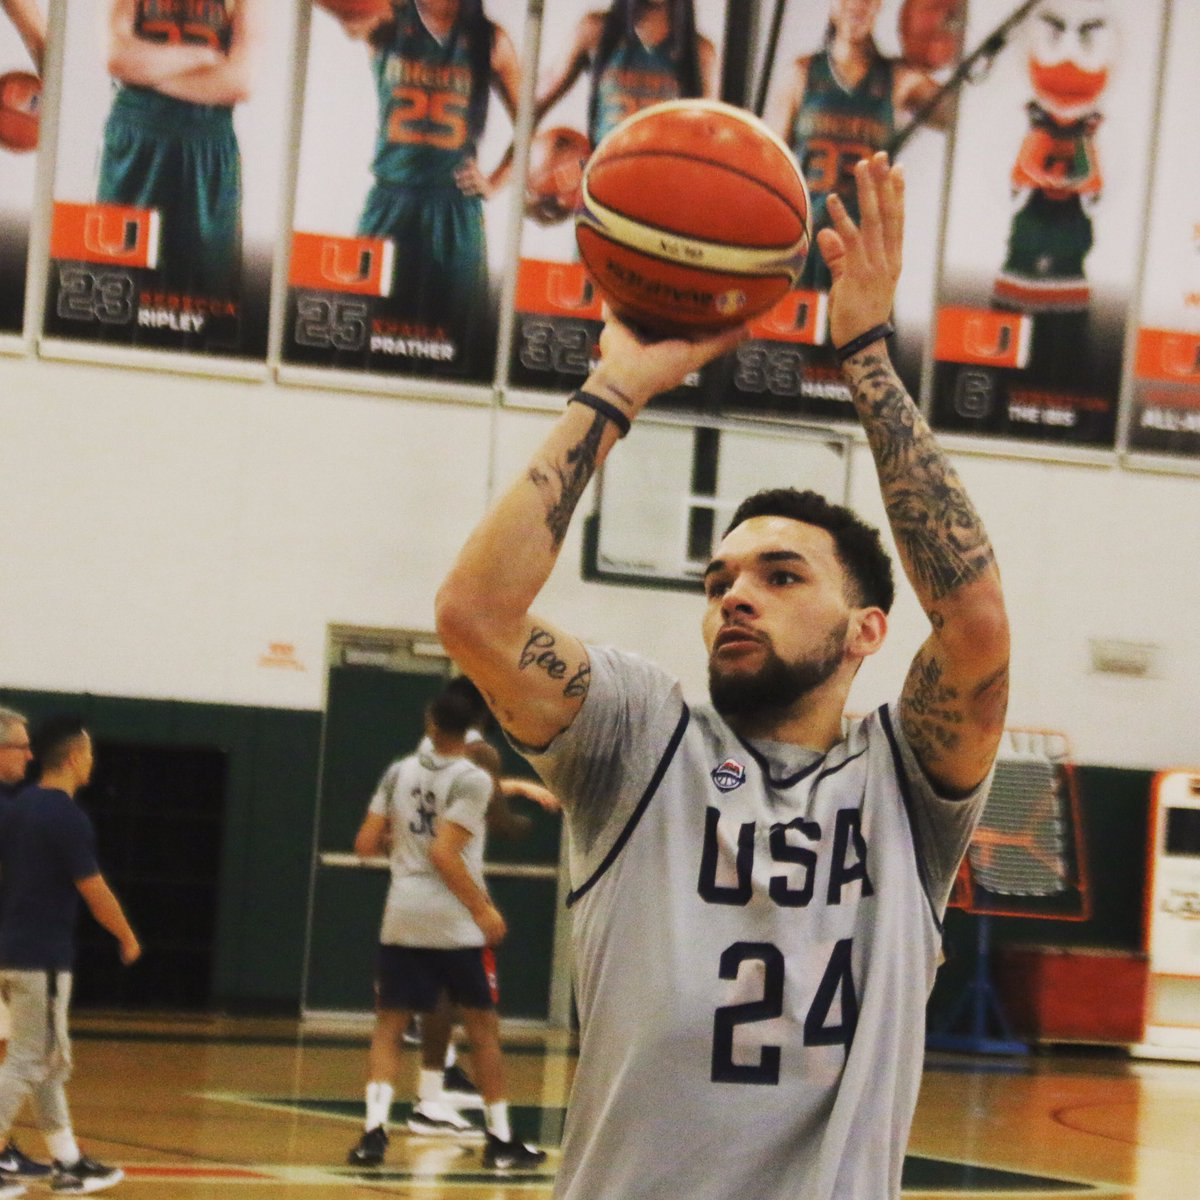 Roster set. @Chiozza11 is gonna be ballin' for @usabasketball against Panama & Argentina in final @FIBAWC qualifying window.